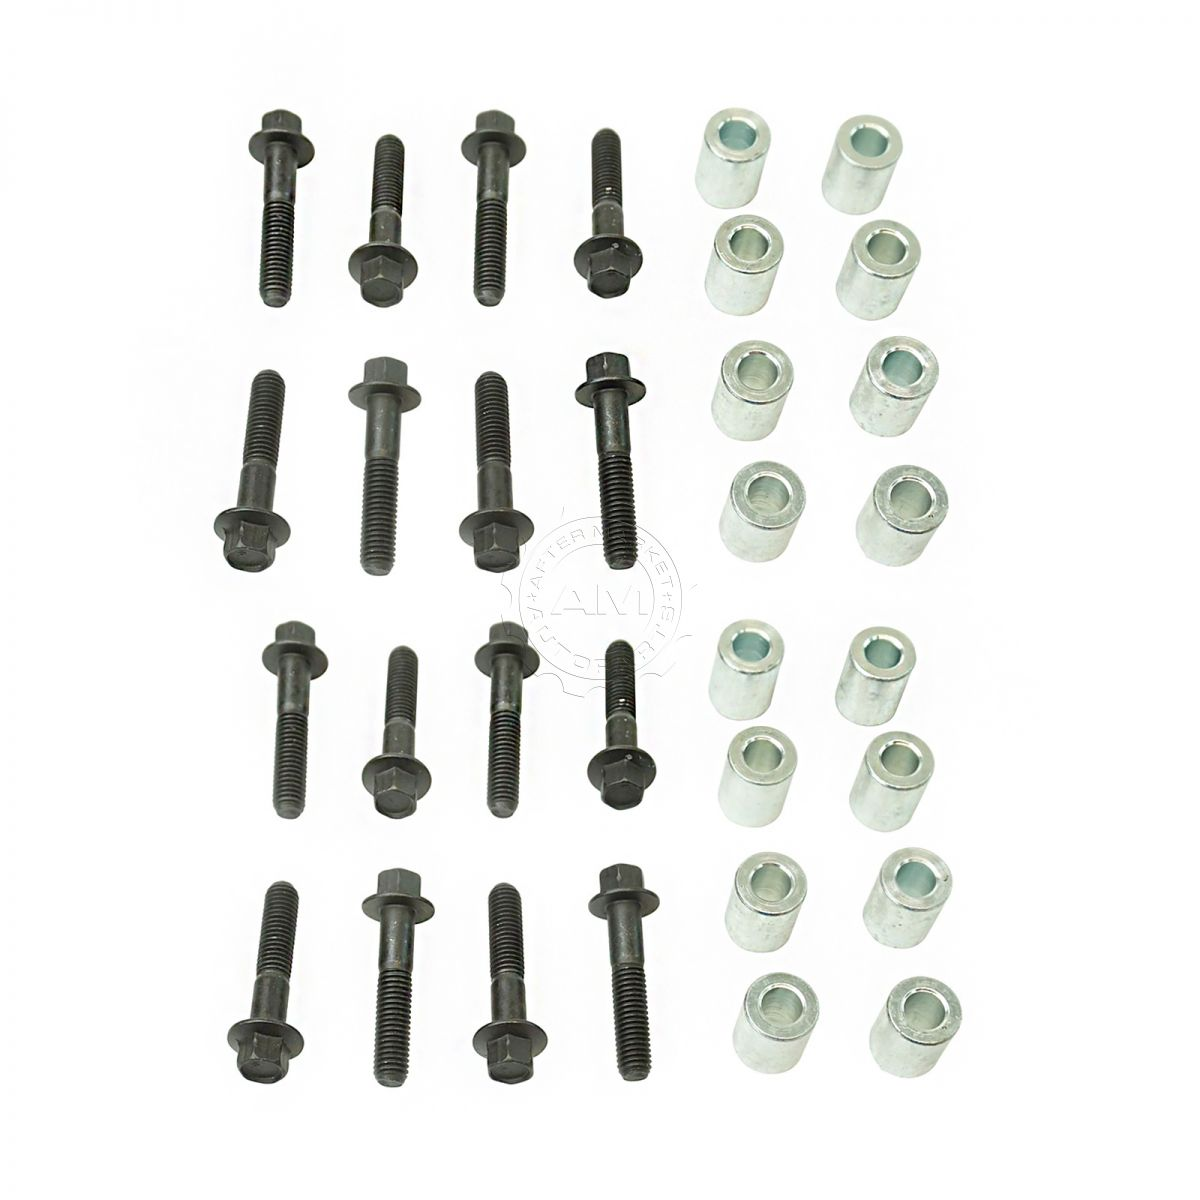 Dorman Exhaust Manifold Bolt Amp Stud Hardware Kit For Ford